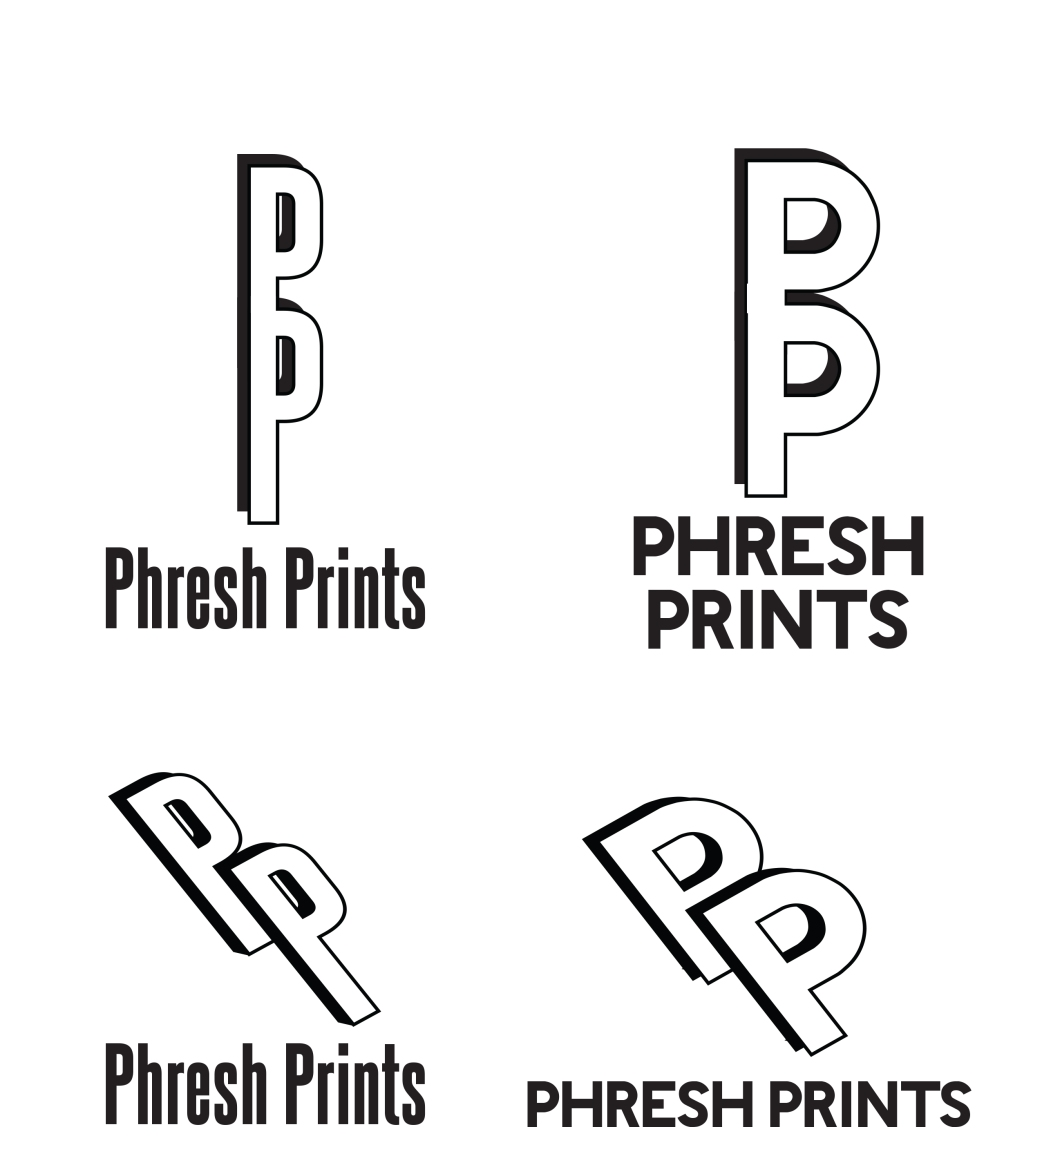 PHRESH PRINTS ICON LOGO